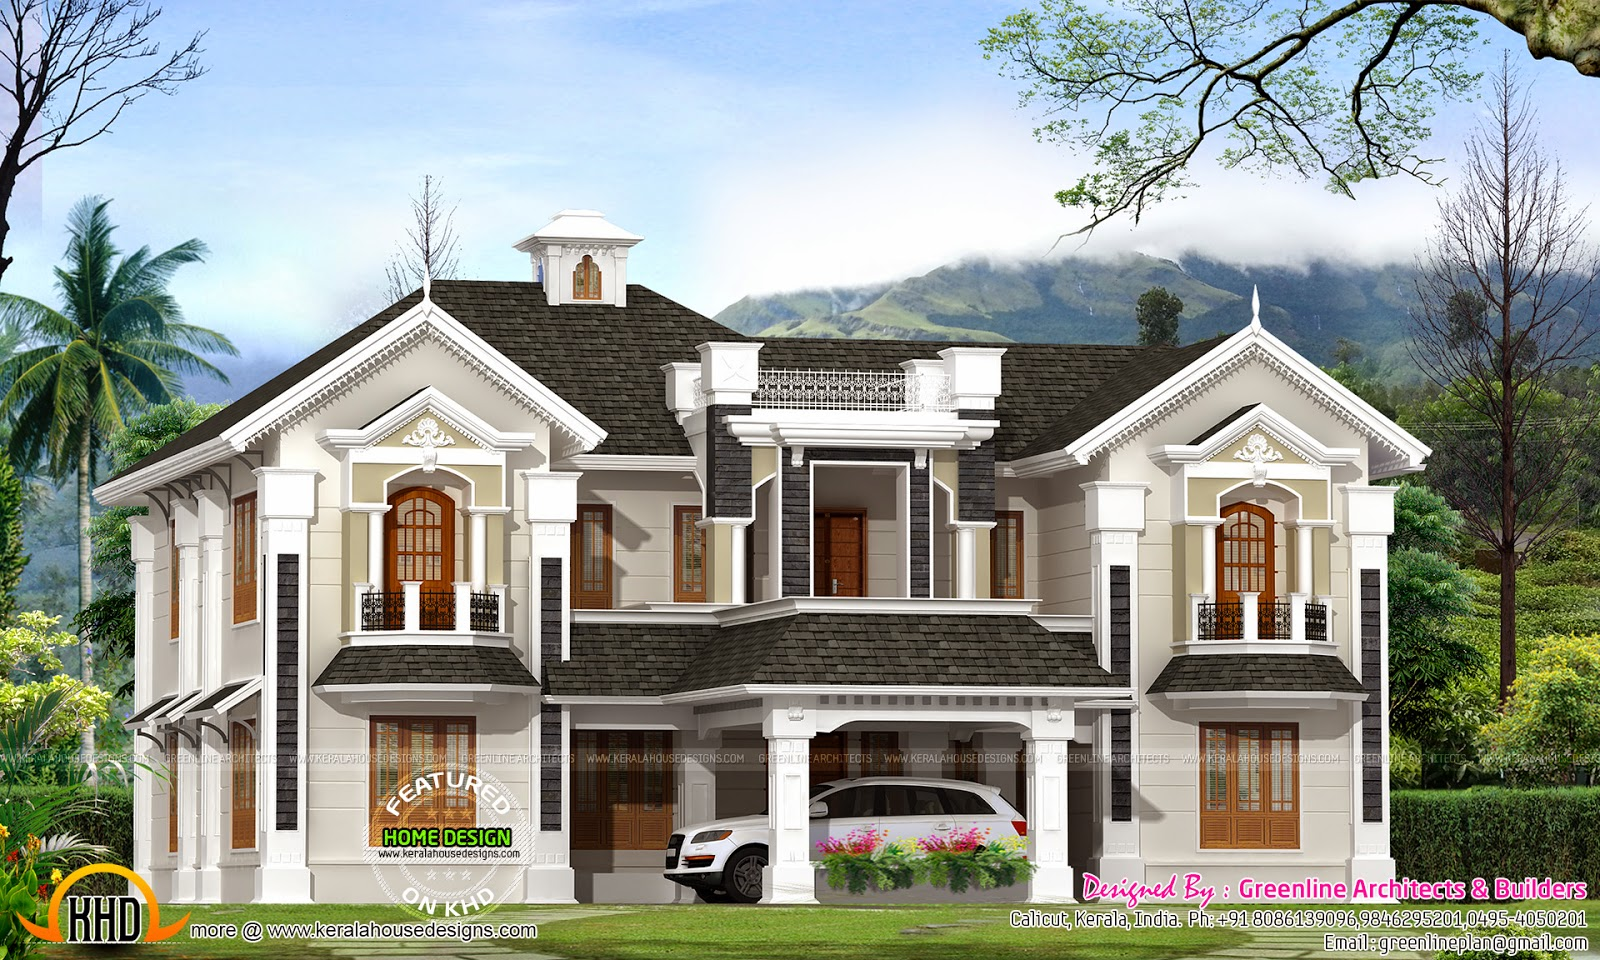 Colonial style house in kerala kerala home design and for Colonial house plans